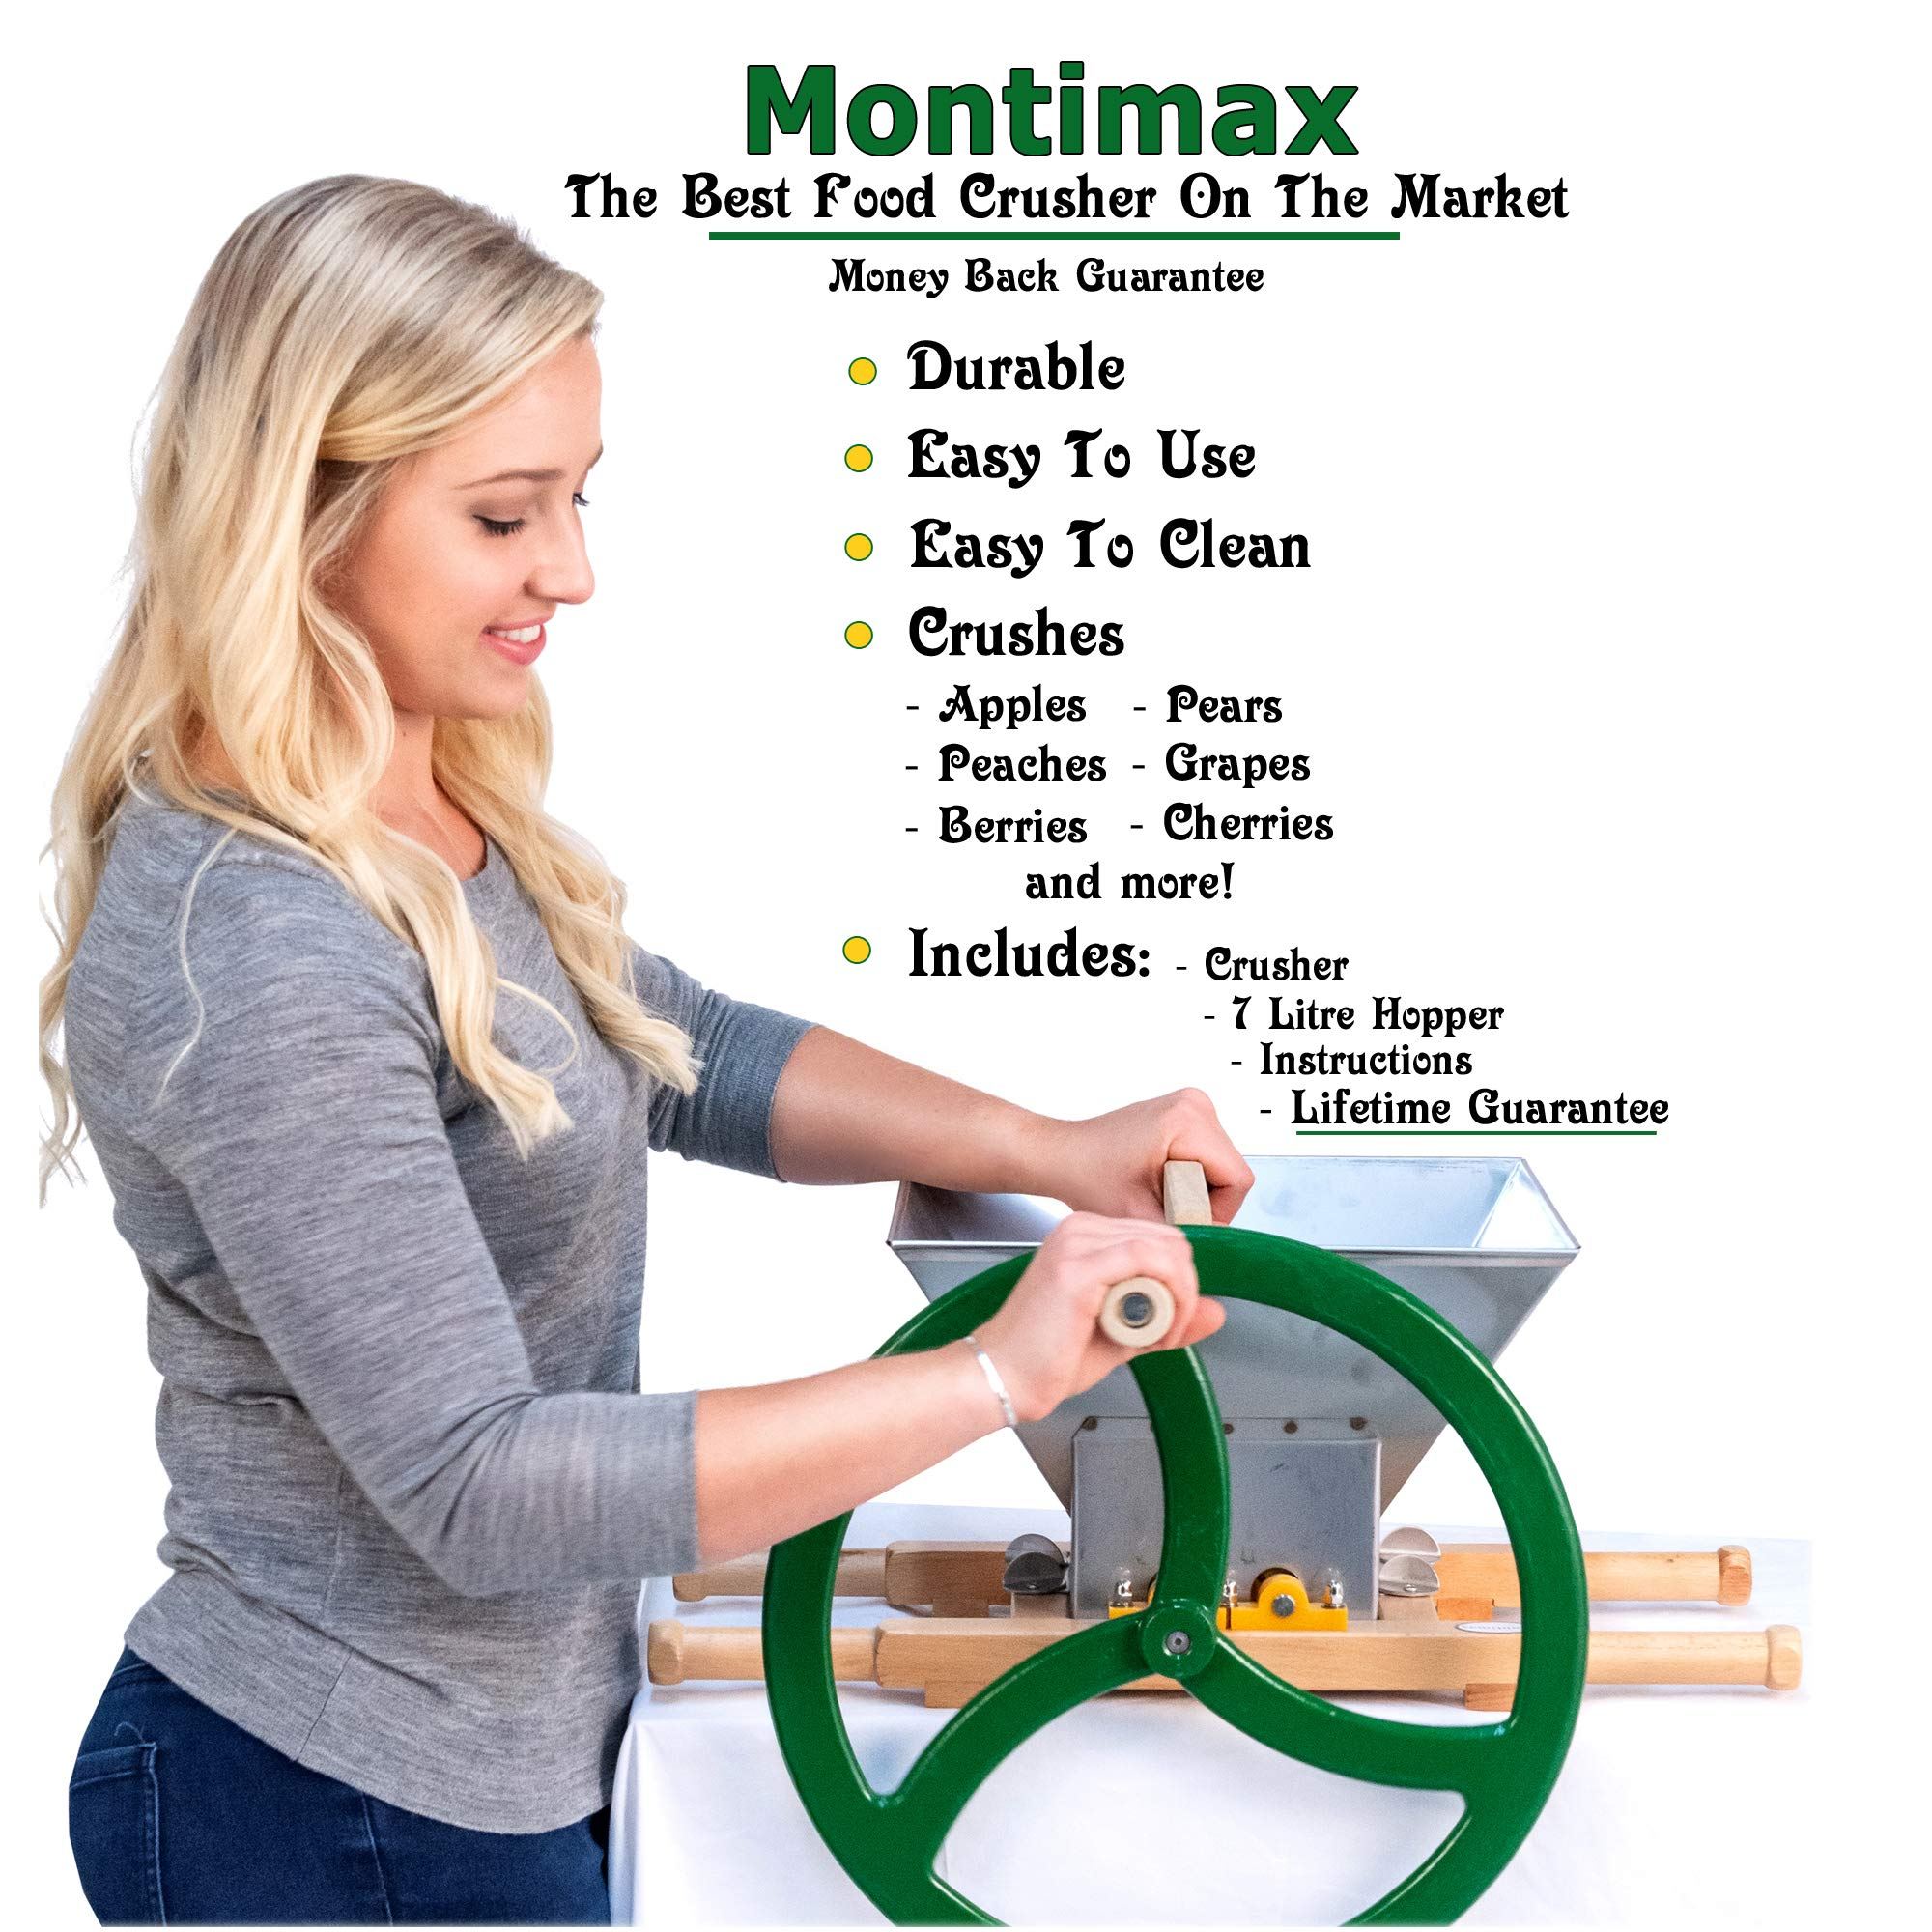 Fruit & Apple Crusher for Wine & Cider Pressing - Manual Juicer Grinder & Fruit Scatter - Heavy Duty Stainless Steel Cutting Blades & Hopper - By Green Max Products by Montimax By Green Max Products (Image #4)